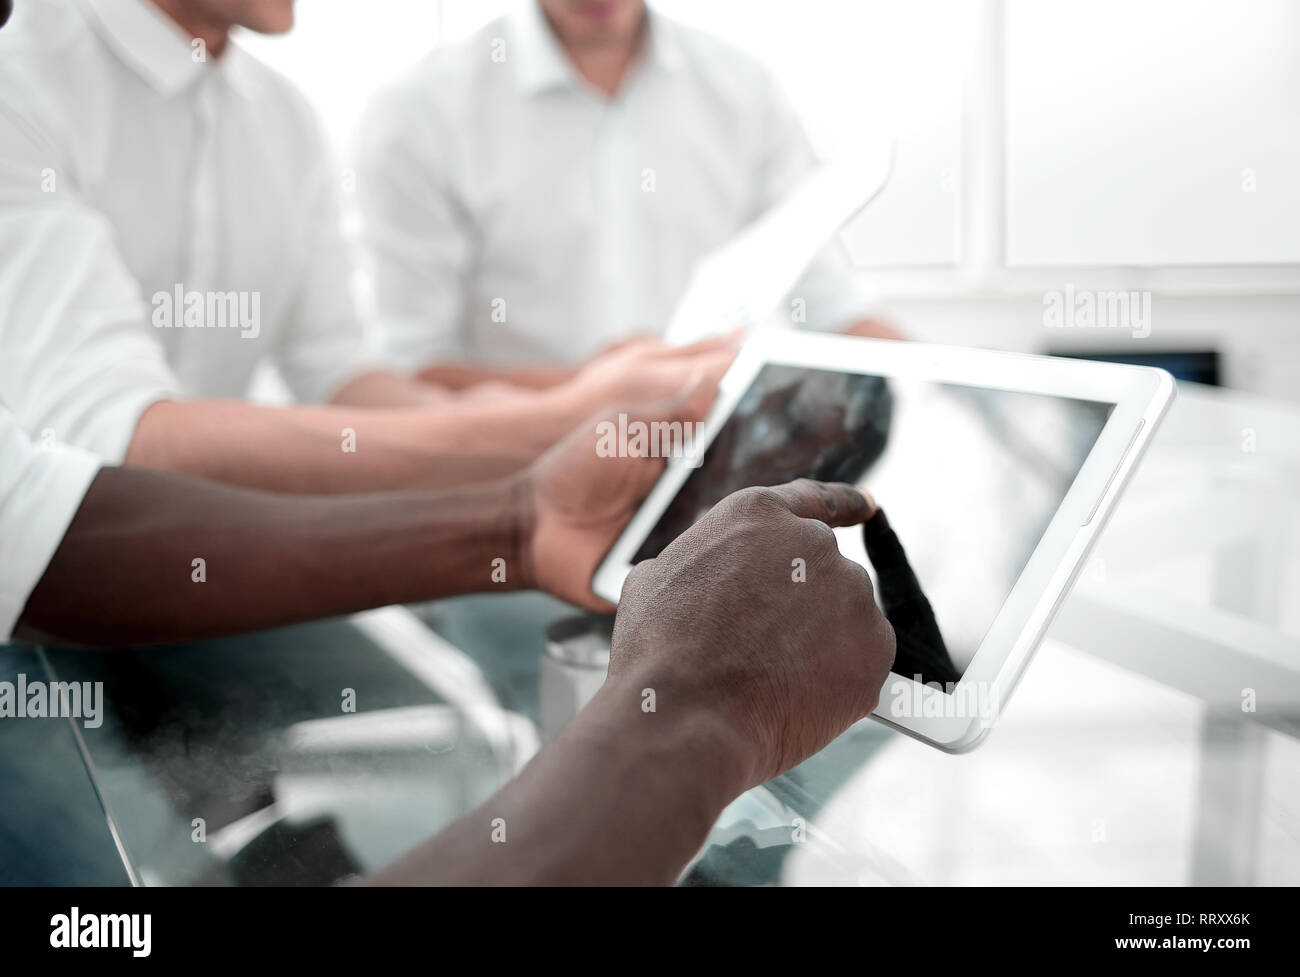 employee tapping the screen of the digital tablet. - Stock Image